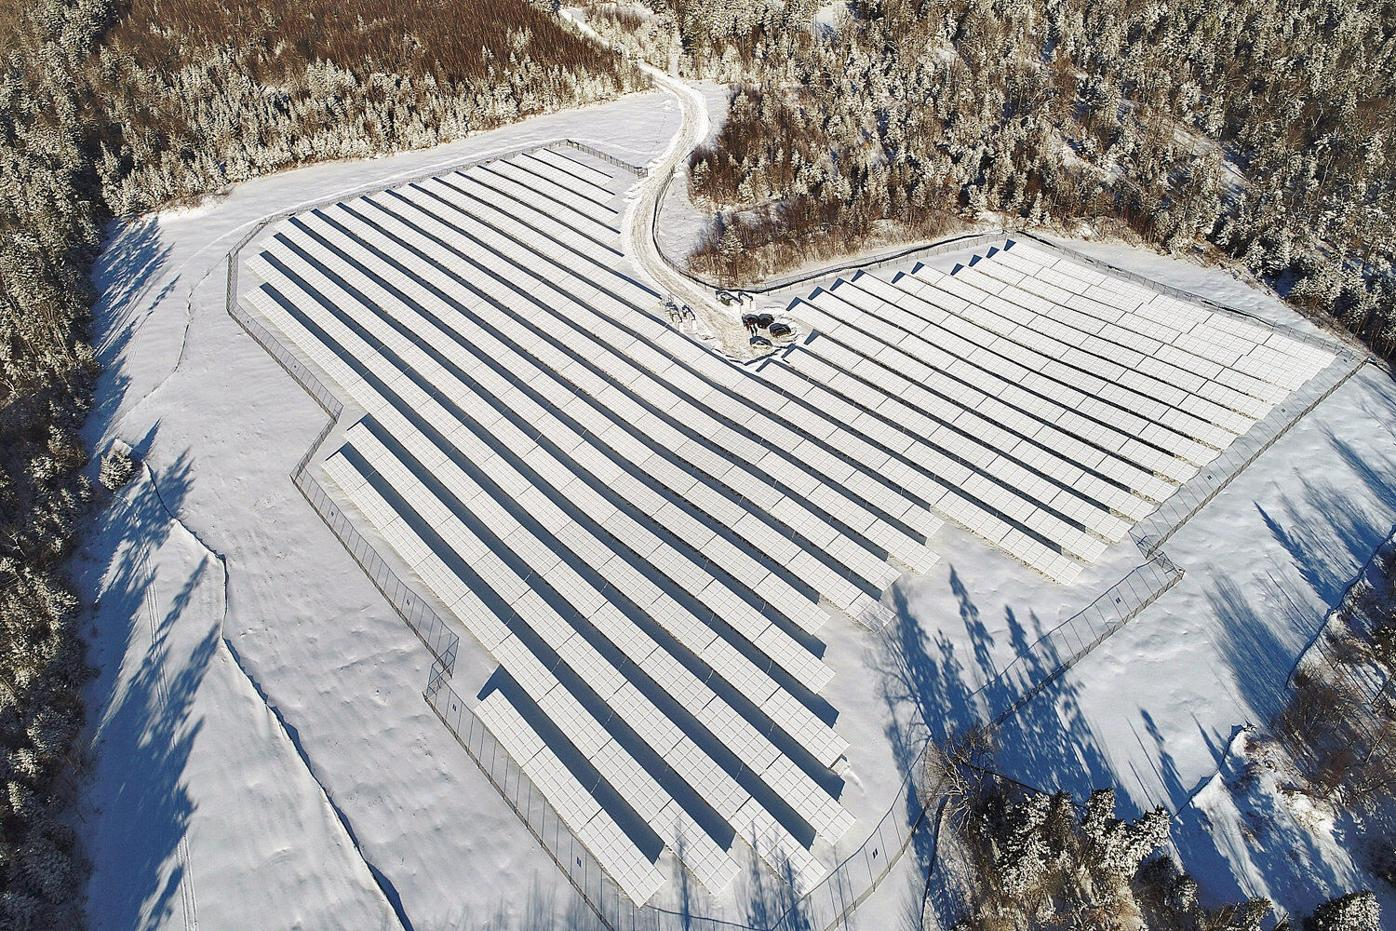 Eversource's leap into solar power hits milestone; more planned